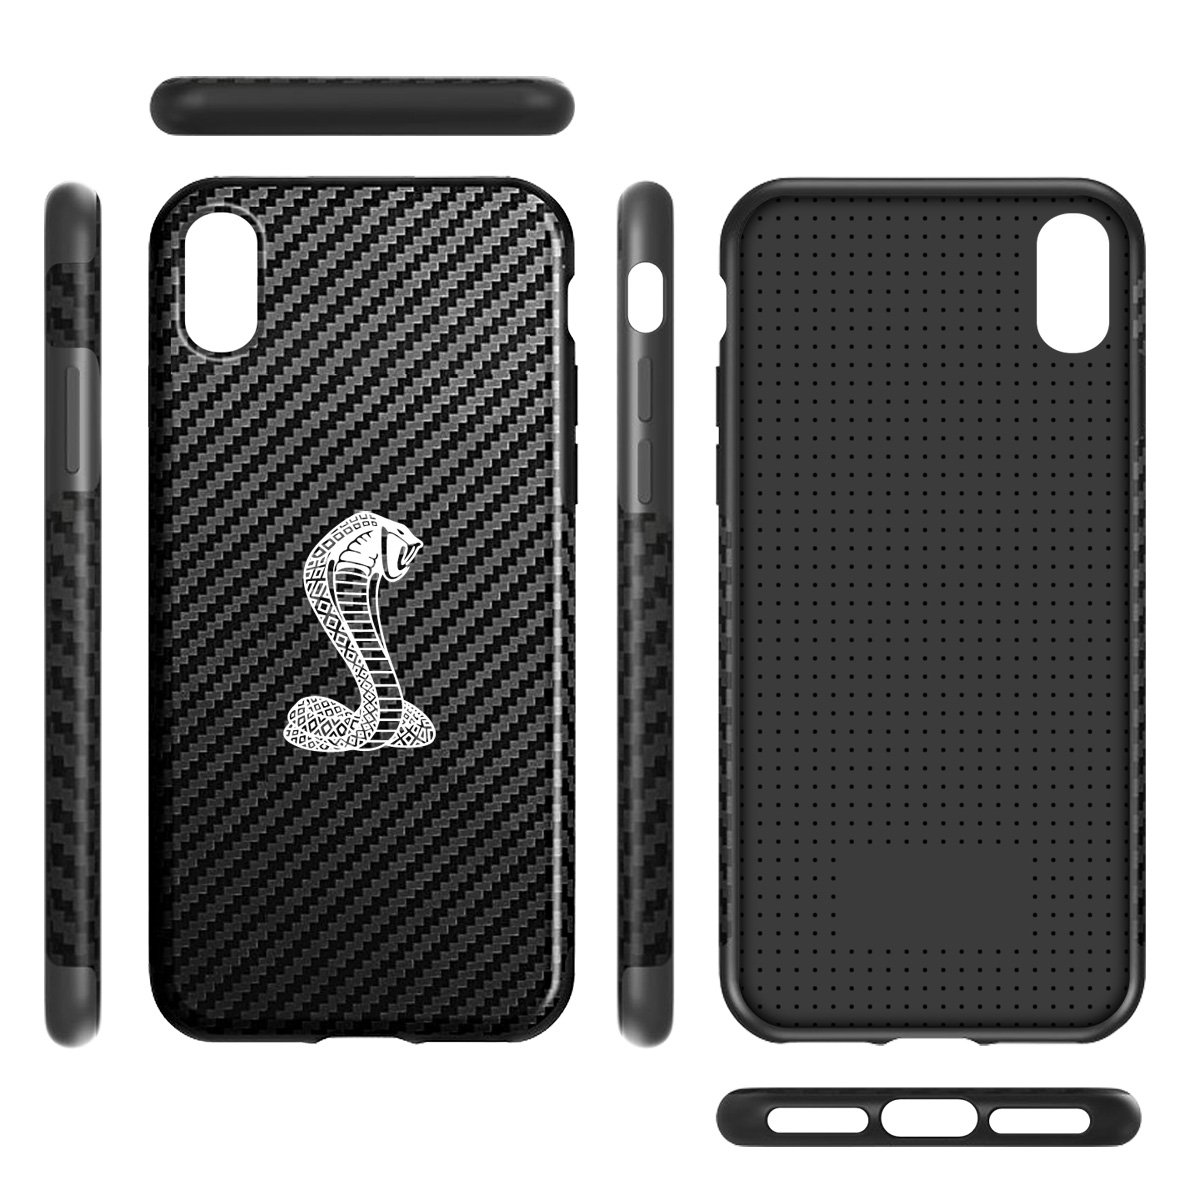 Iphone X Ford Mustang Case